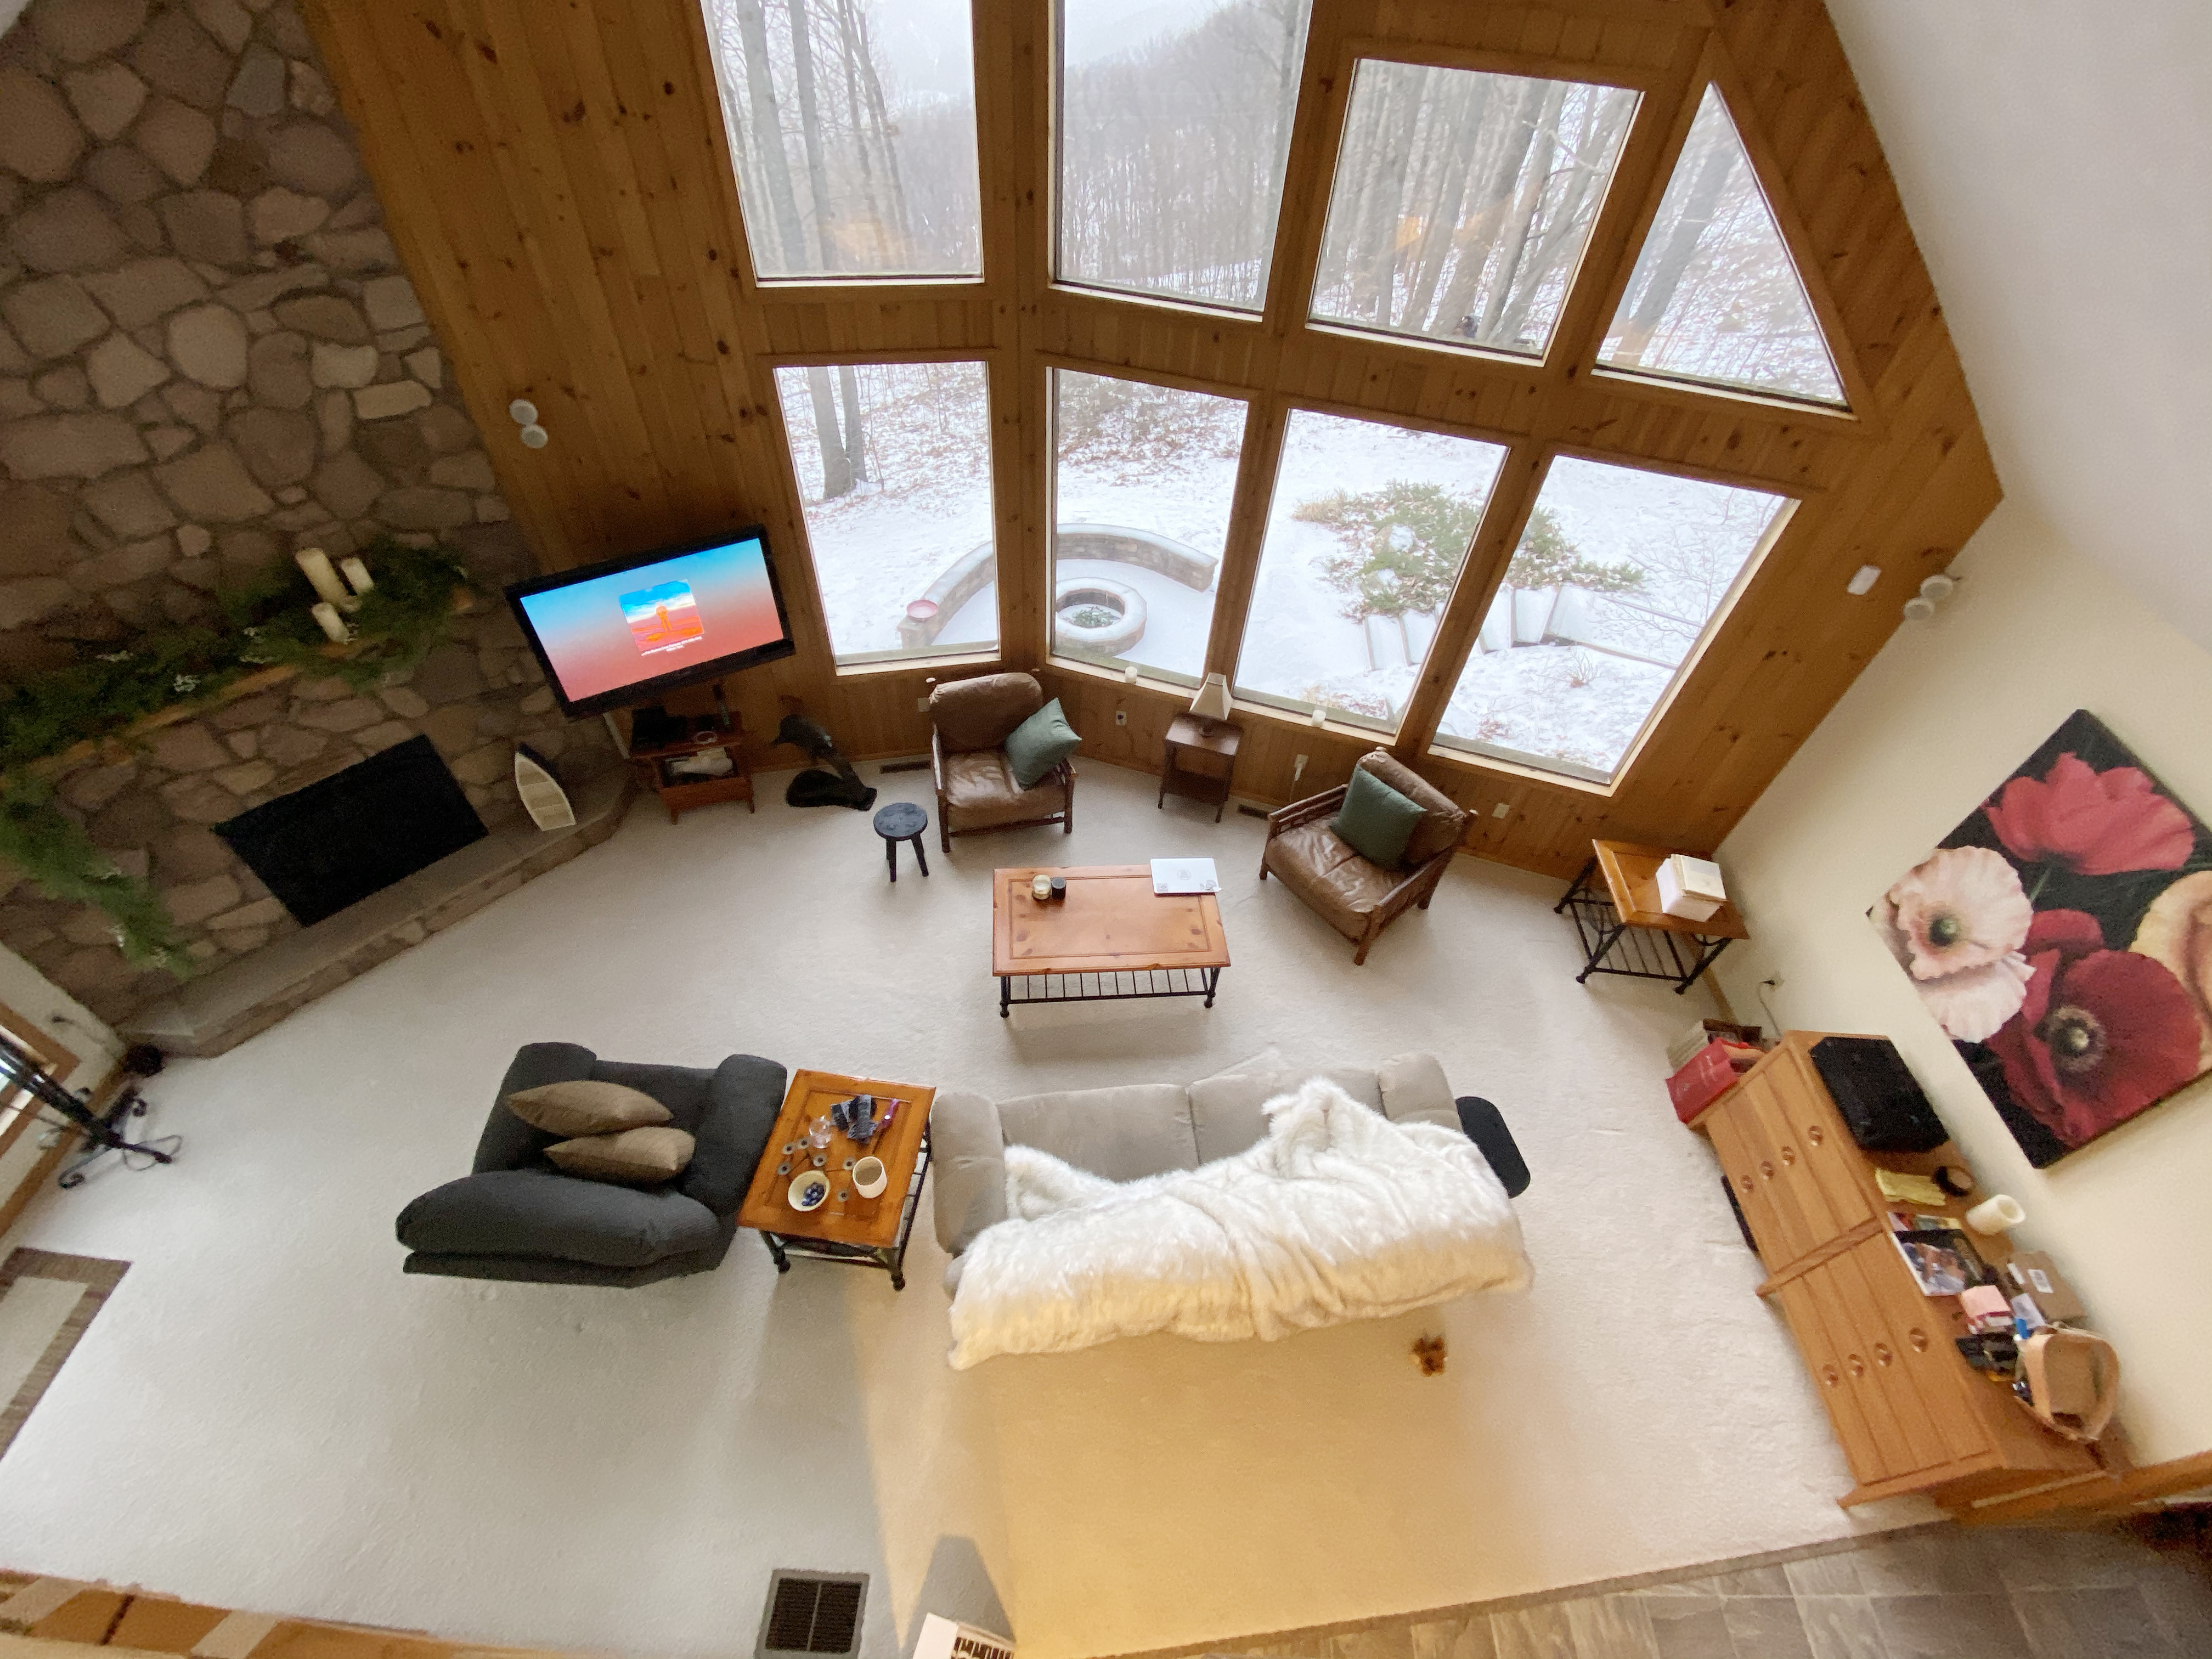 Cabin living room view from above.